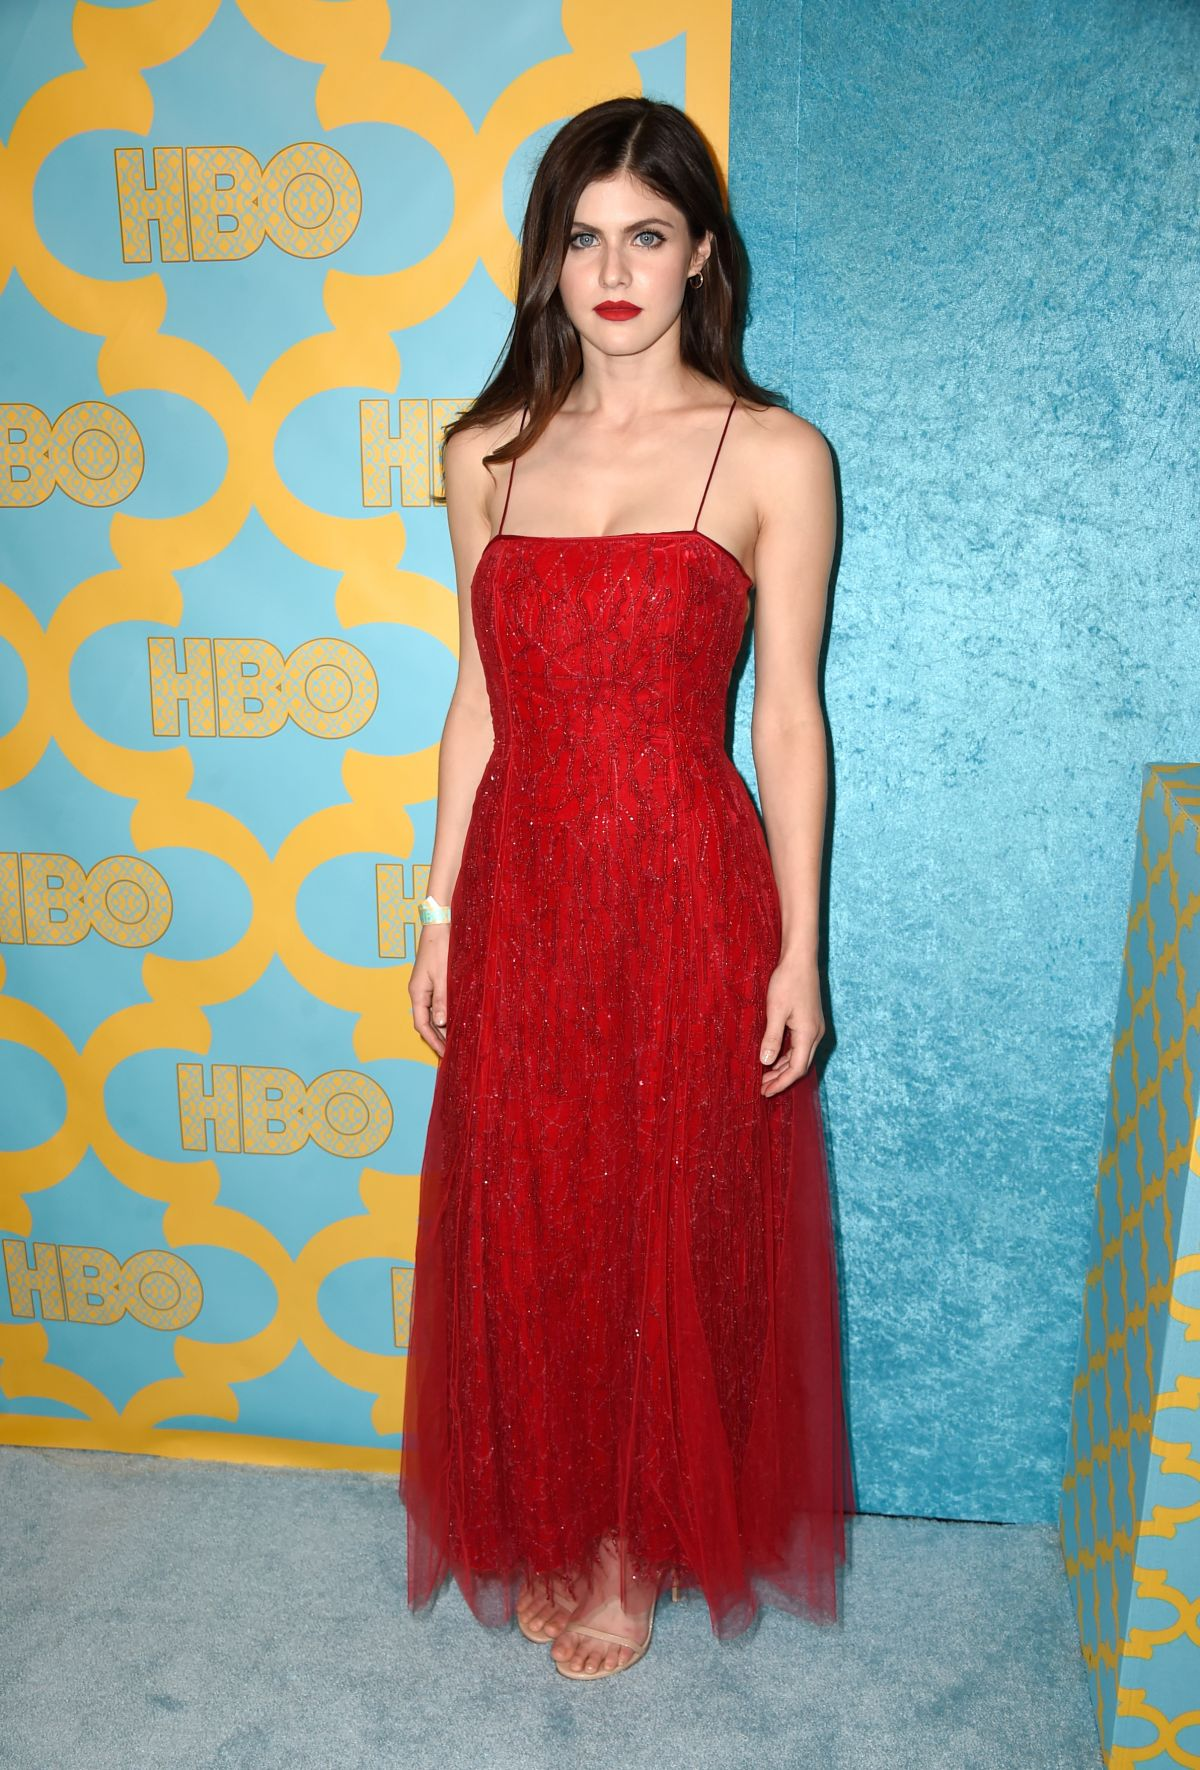 ALEXANDRA DADDARIO at HBO Golden Globes Party in Beverly Hills